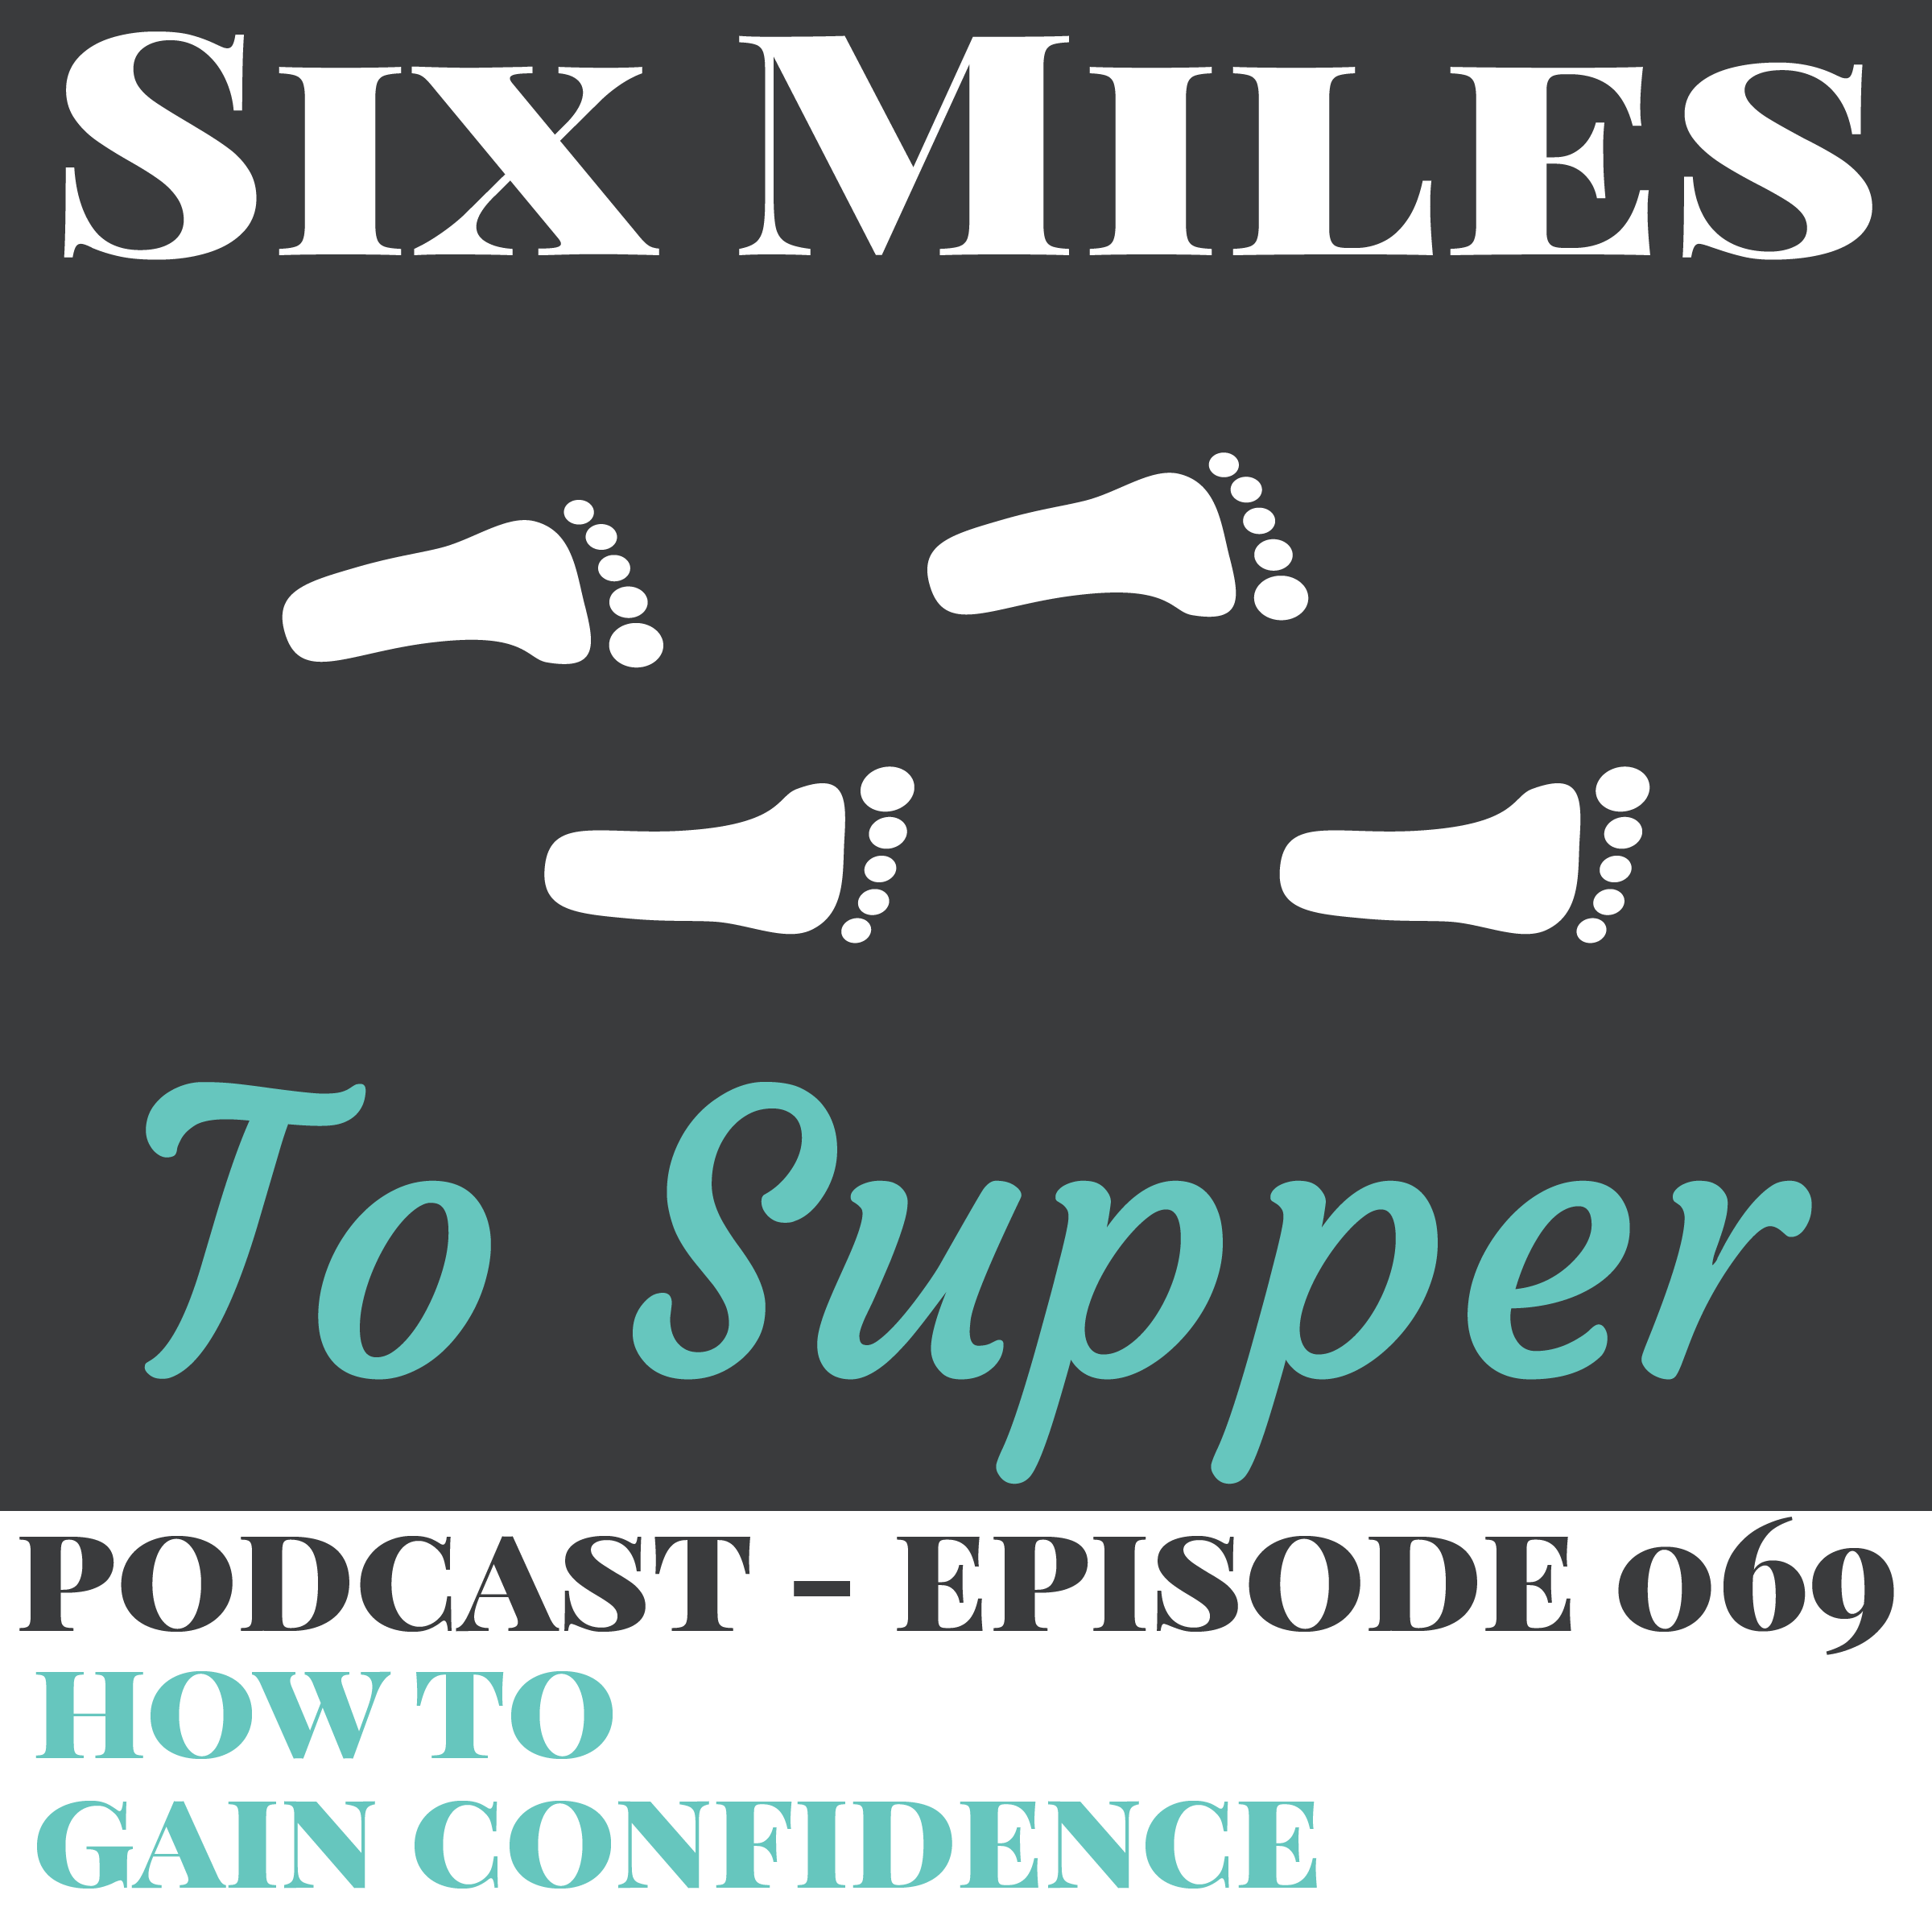 SMTS 069: How to Gain Confidence